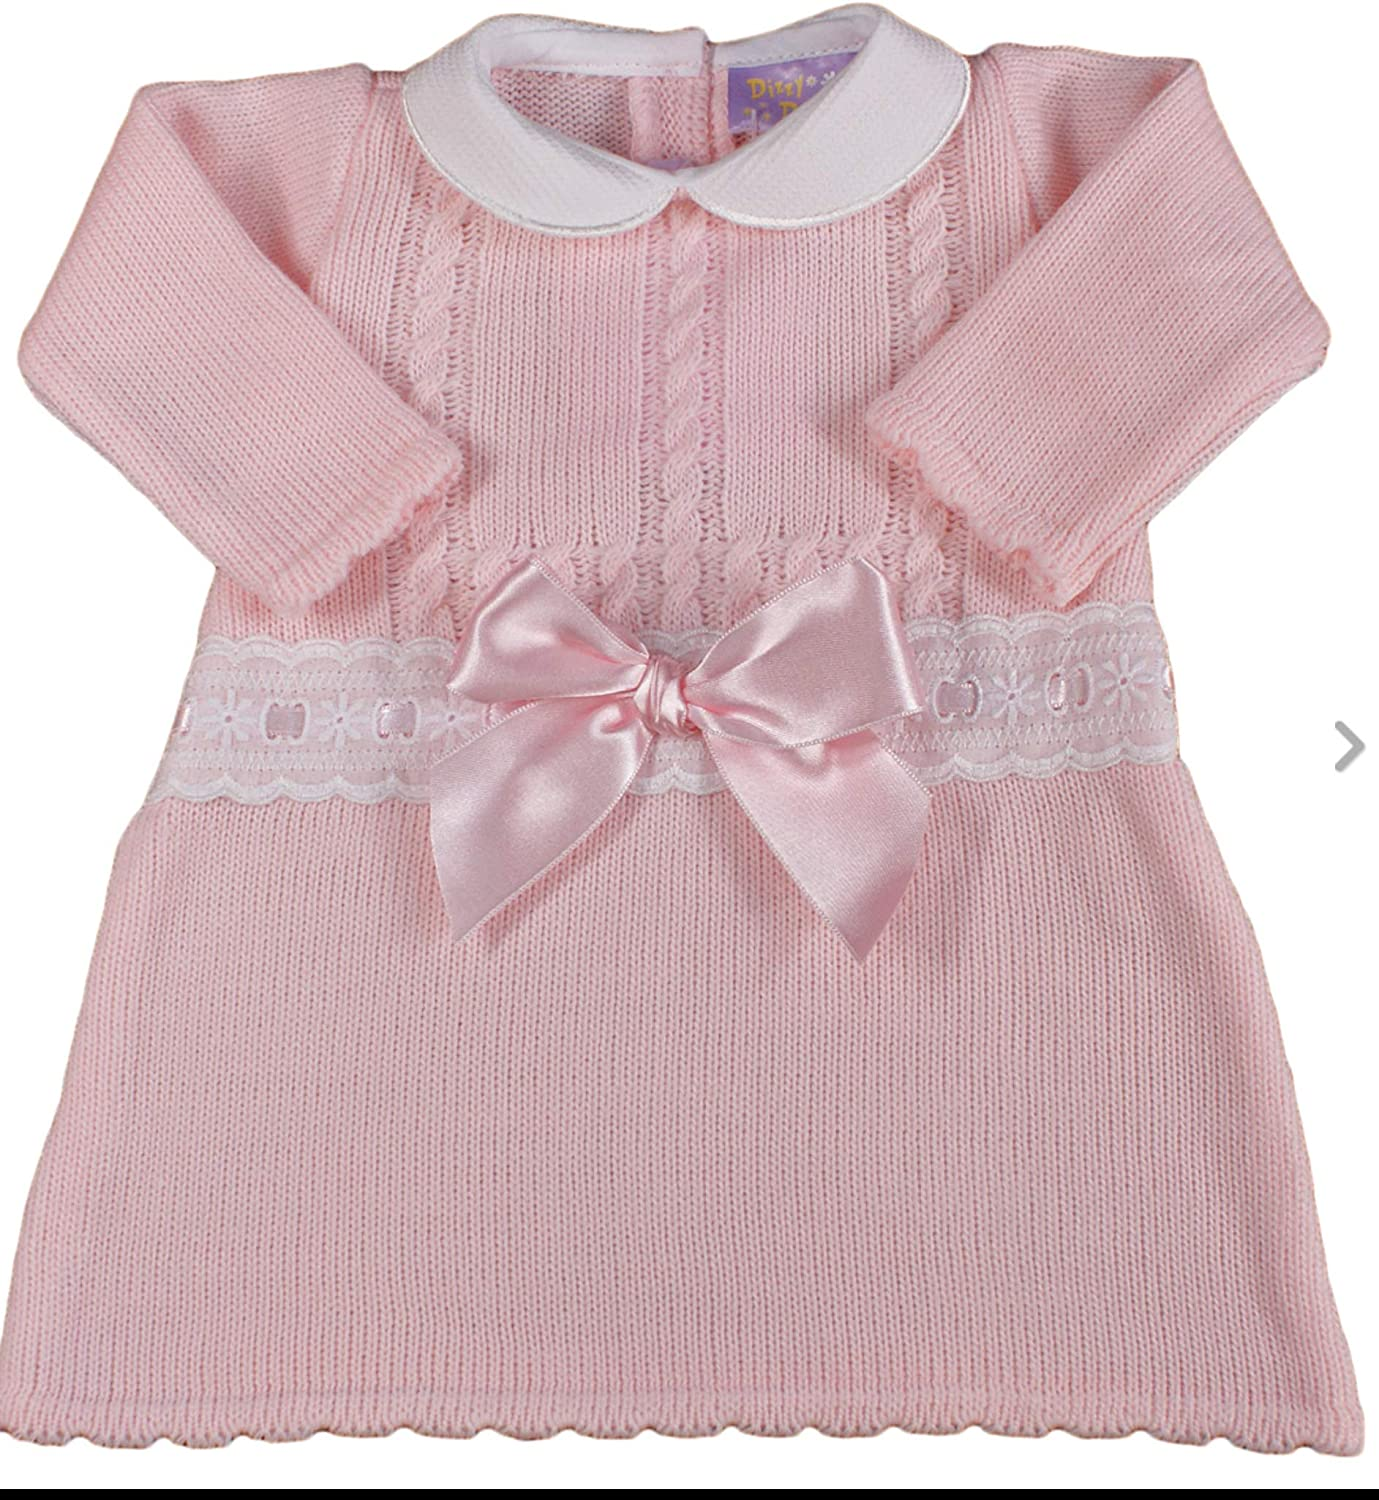 Baby girl DRESS knitted Spanish style BOW